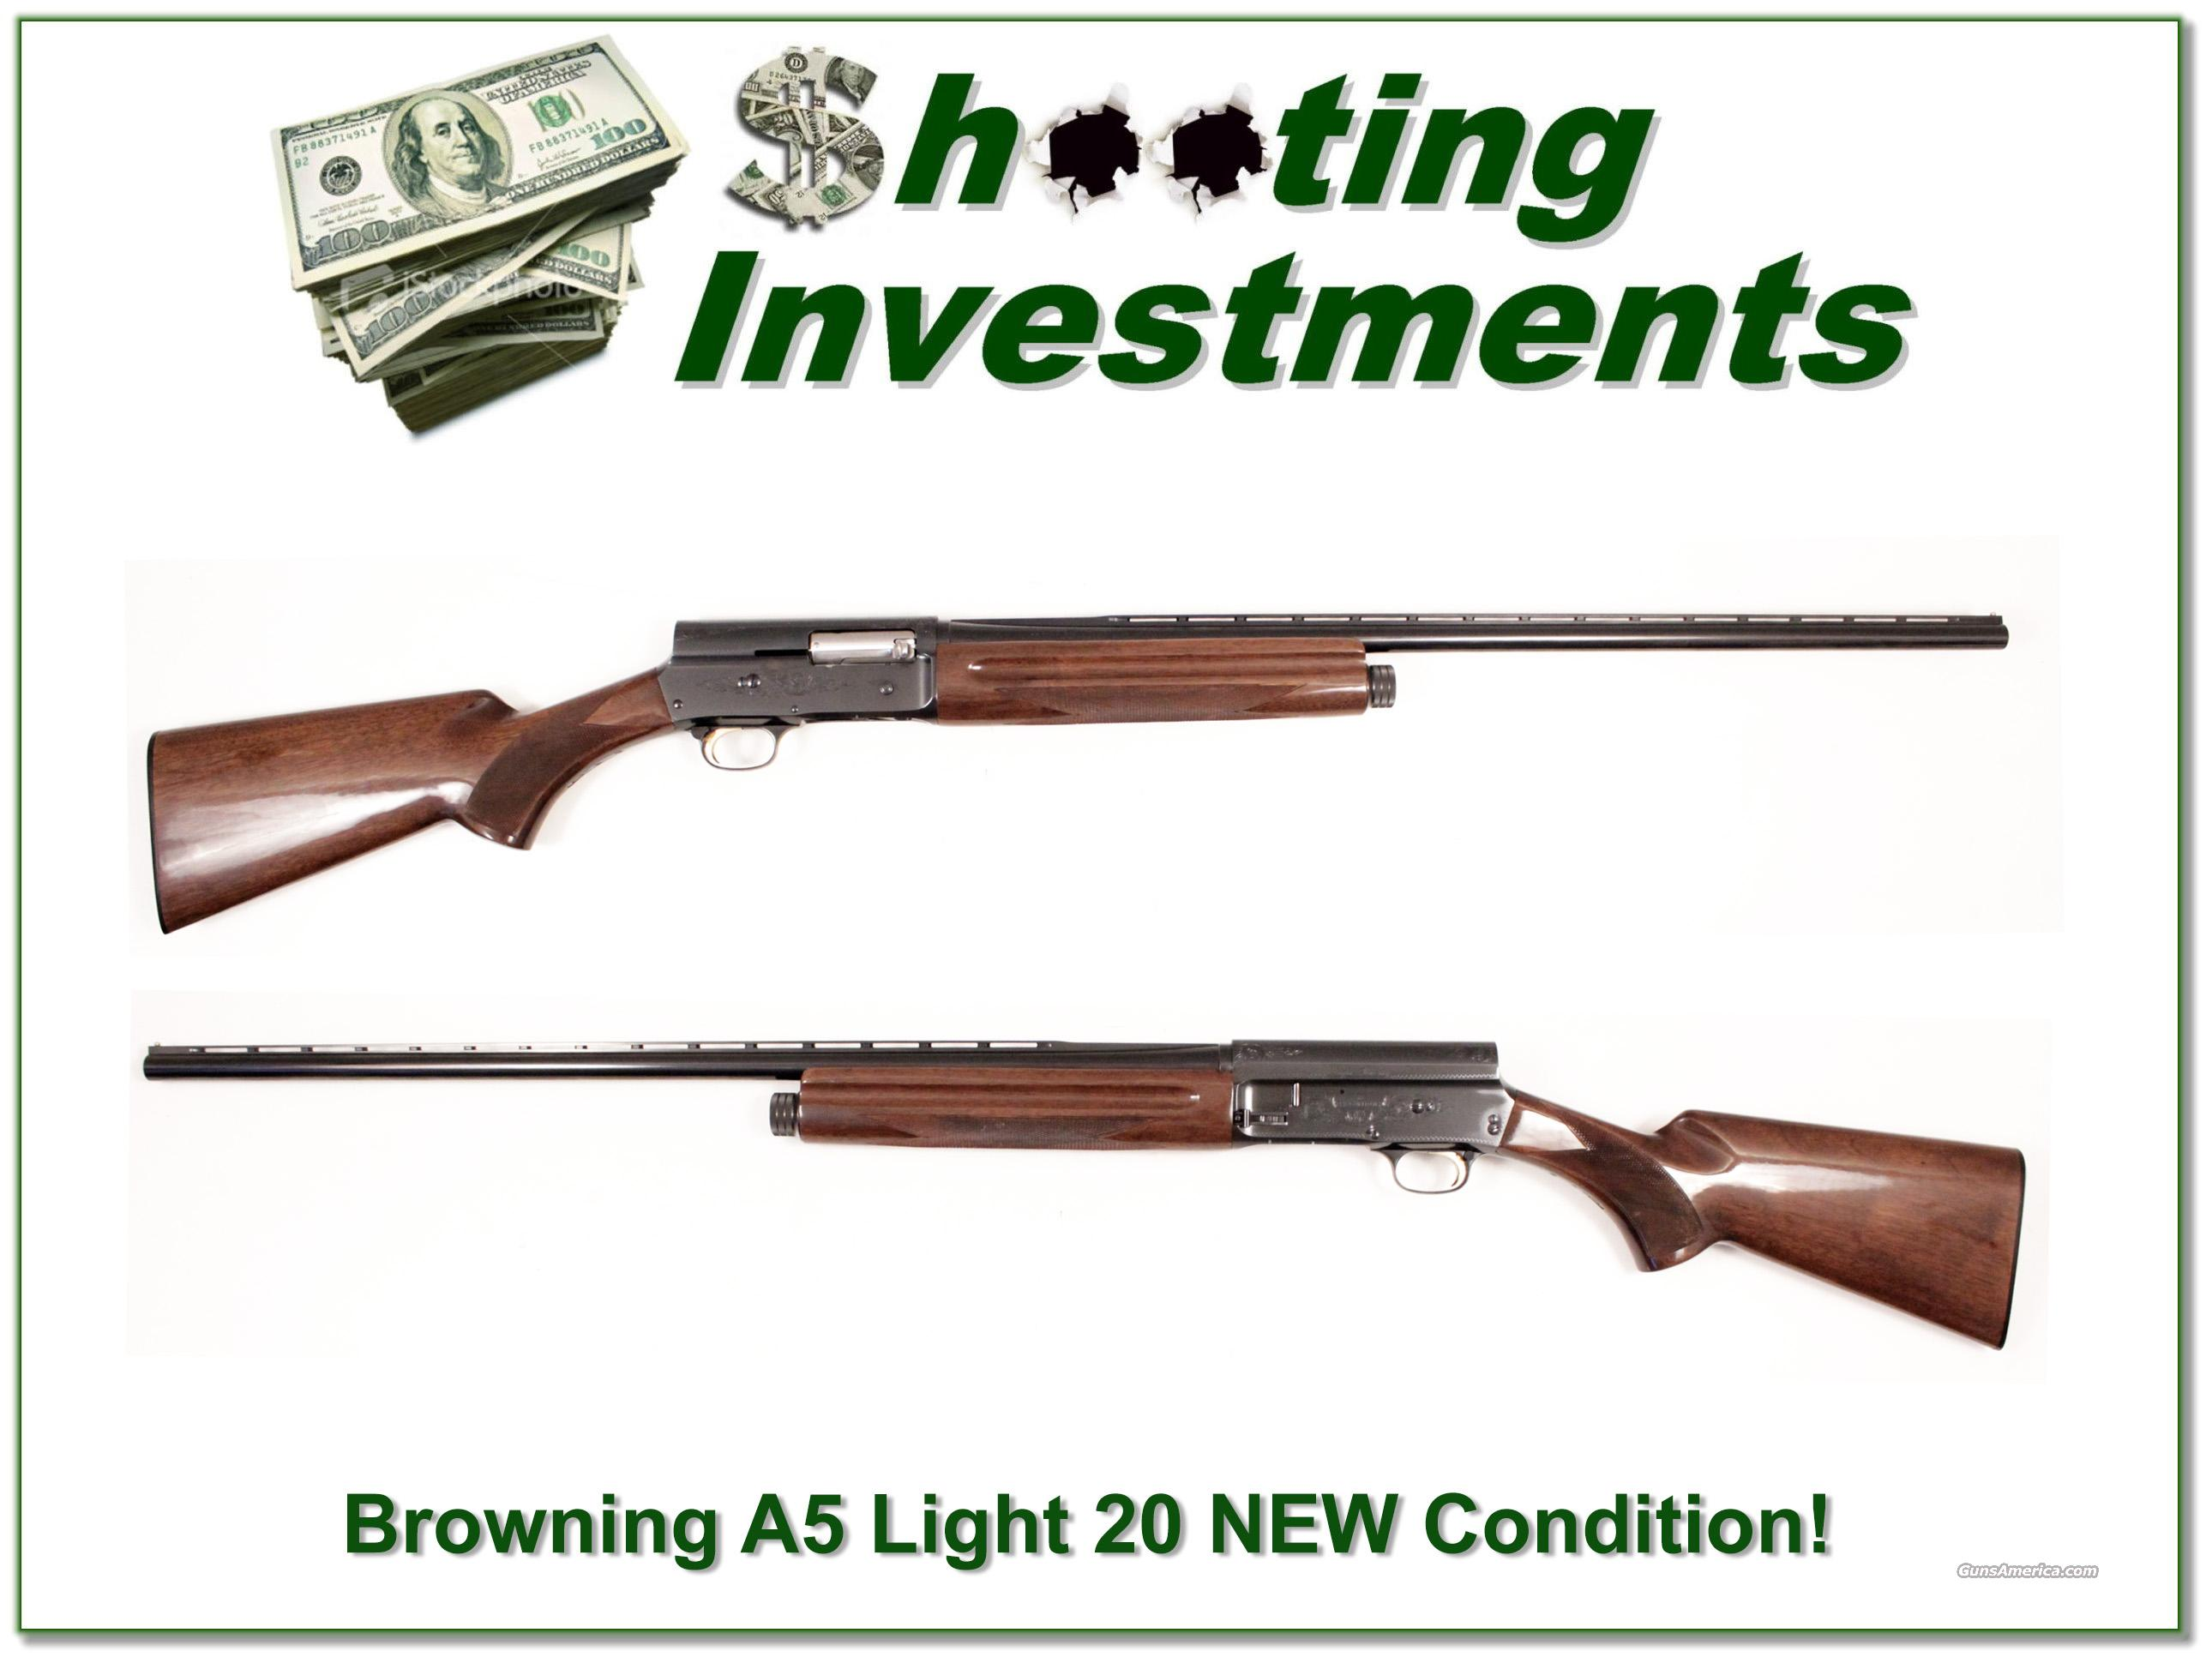 Browning A5 Light 20 28in VR Like NEW  Guns > Shotguns > Browning Shotguns > Autoloaders > Hunting